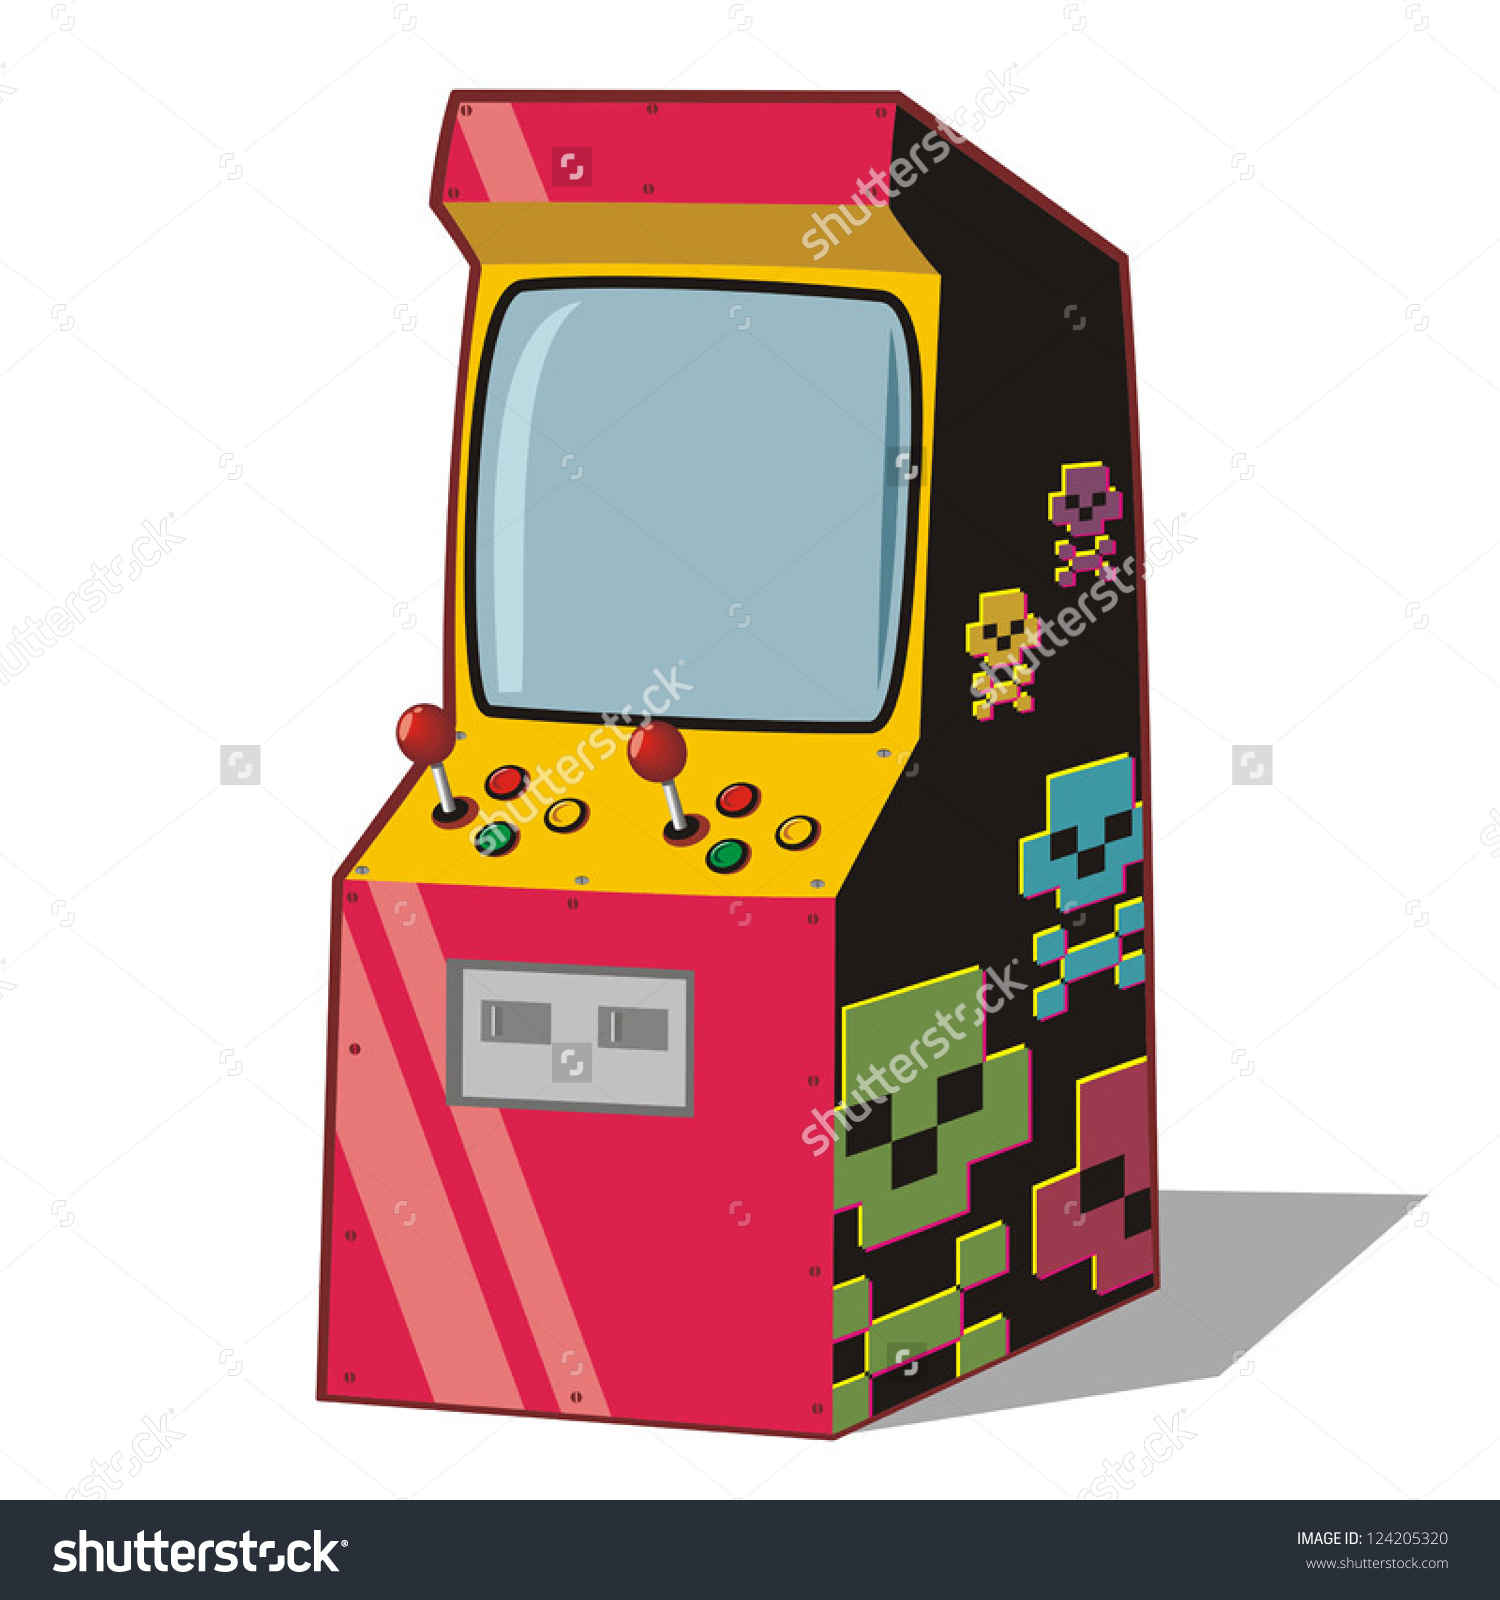 Arcade clipart clip art. Free download best on